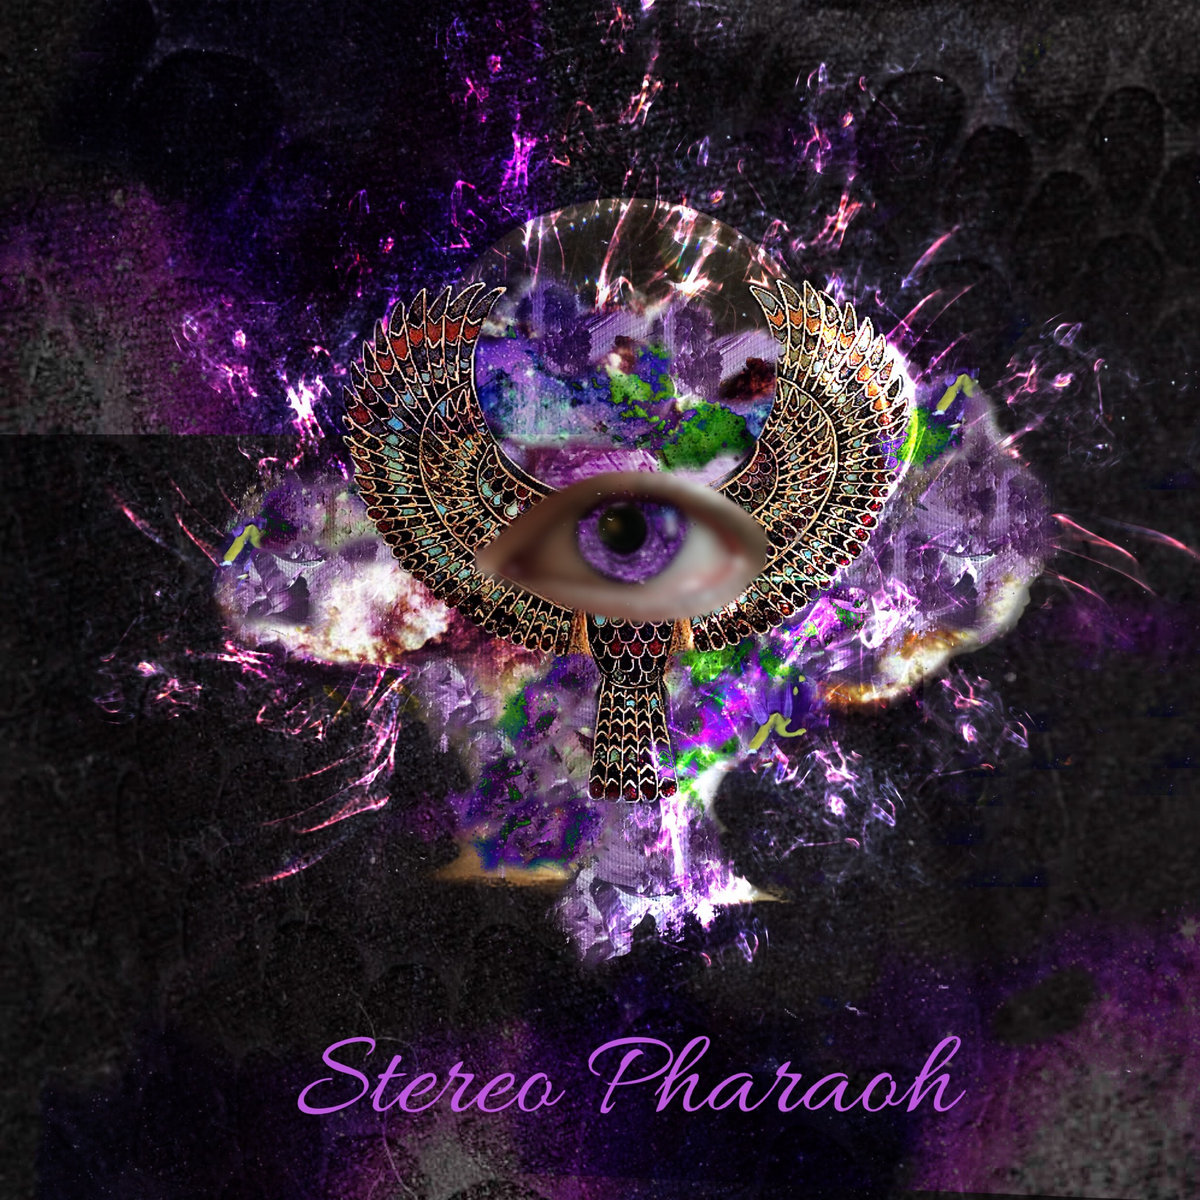 www.facebook.com/stereopharaoh